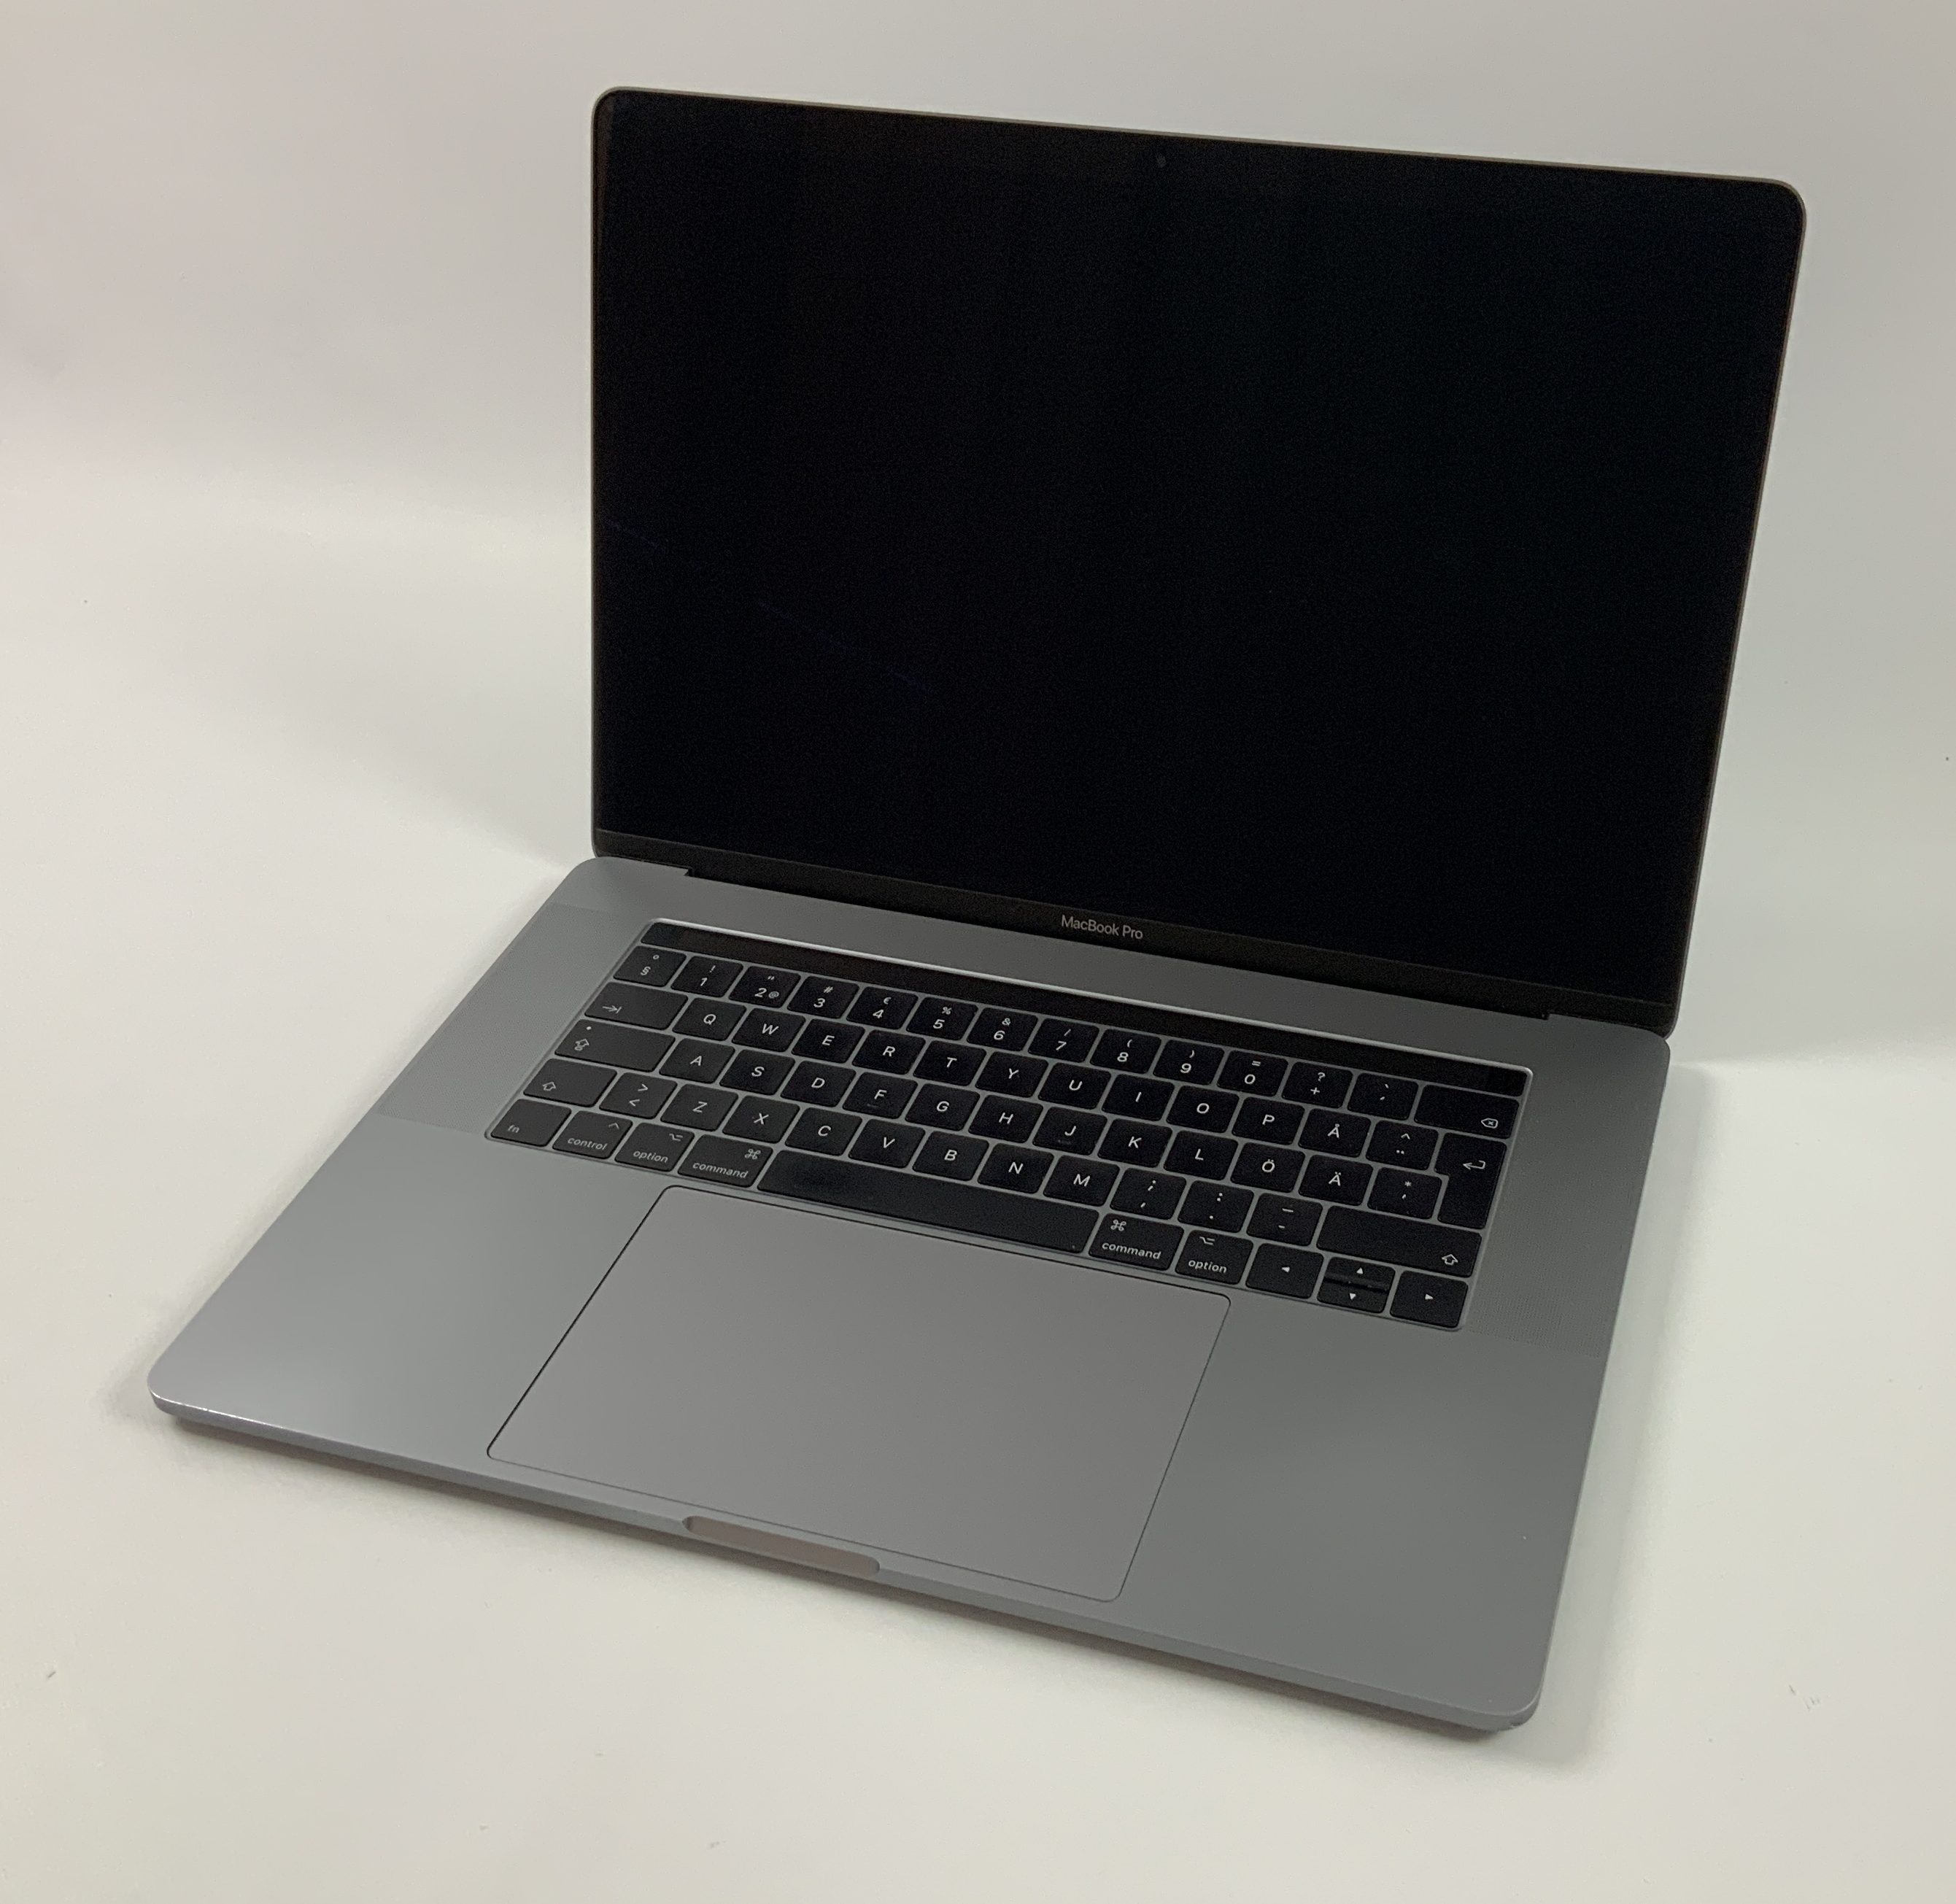 "MacBook Pro 15"" Touch Bar Mid 2017 (Intel Quad-Core i7 2.9 GHz 16 GB RAM 512 GB SSD), Space Gray, Intel Quad-Core i7 2.9 GHz, 16 GB RAM, 512 GB SSD, Afbeelding 1"